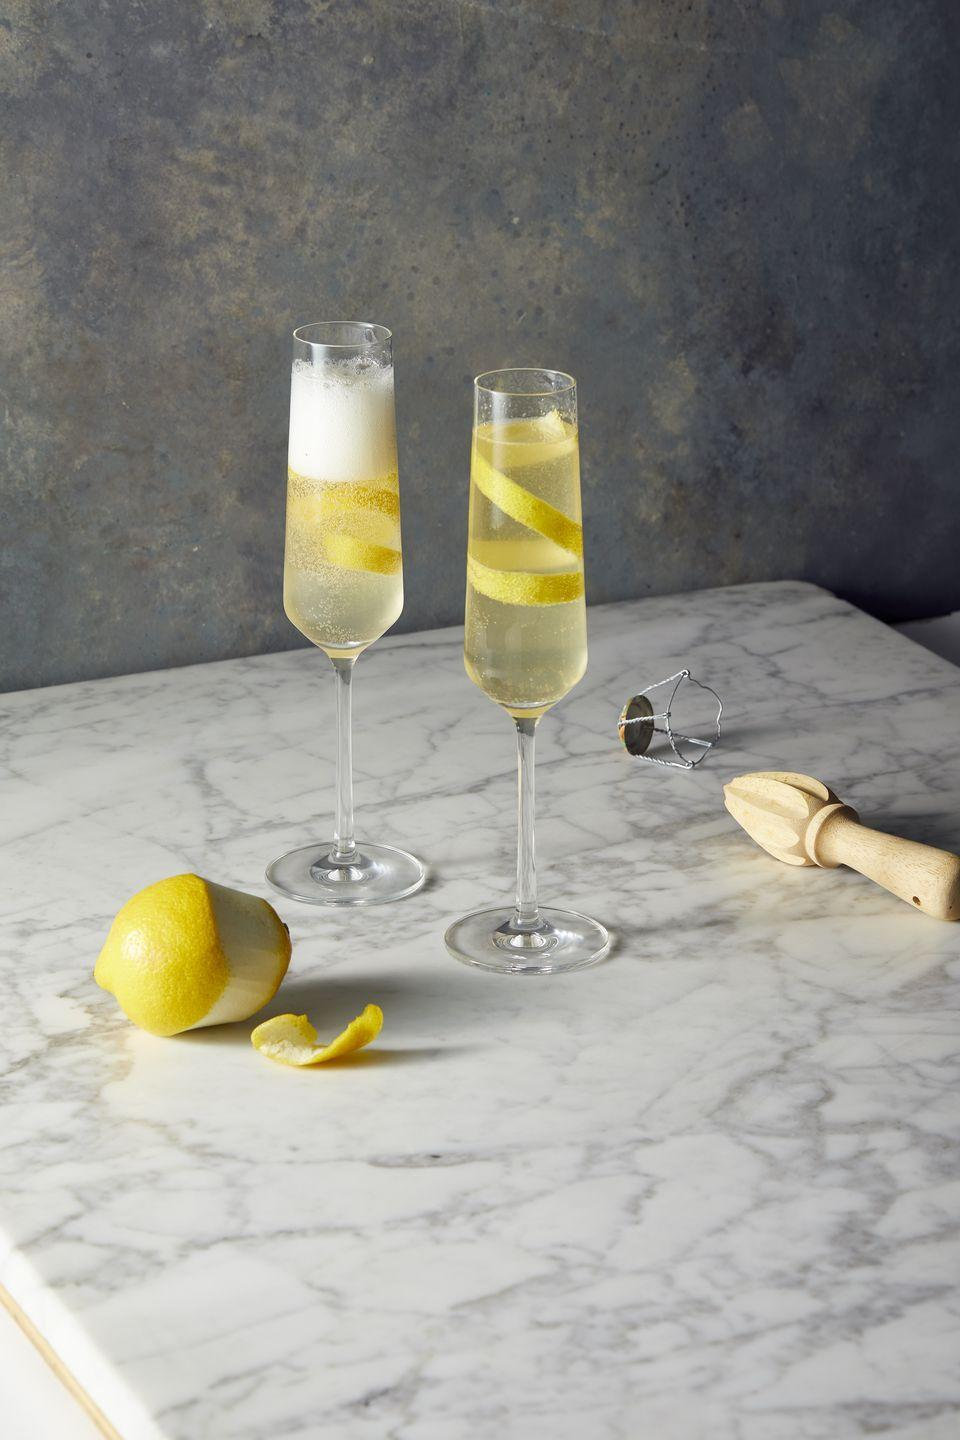 """<p>Reach for a flute if you fancy a tart, bubbly beverage, originally developed in Paris in the 1920s. In a cocktail shaker filled with ice, shake 2 oz gin, ¾ oz lemon juice and ½ oz simple syrup. Strain into a flute and top with 2 oz sparkling wine. Serve with a lemon twist.<strong><br></strong></p><p><strong>RELATED:</strong> <a href=""""https://www.goodhousekeeping.com/food-recipes/g29833730/best-champagne-cocktails/"""" rel=""""nofollow noopener"""" target=""""_blank"""" data-ylk=""""slk:10 Champagne Cocktails That Are So Good You'll Never Stop Saying &quot;Cheers&quot;"""" class=""""link rapid-noclick-resp"""">10 Champagne Cocktails That Are So Good You'll Never Stop Saying """"Cheers""""</a></p>"""